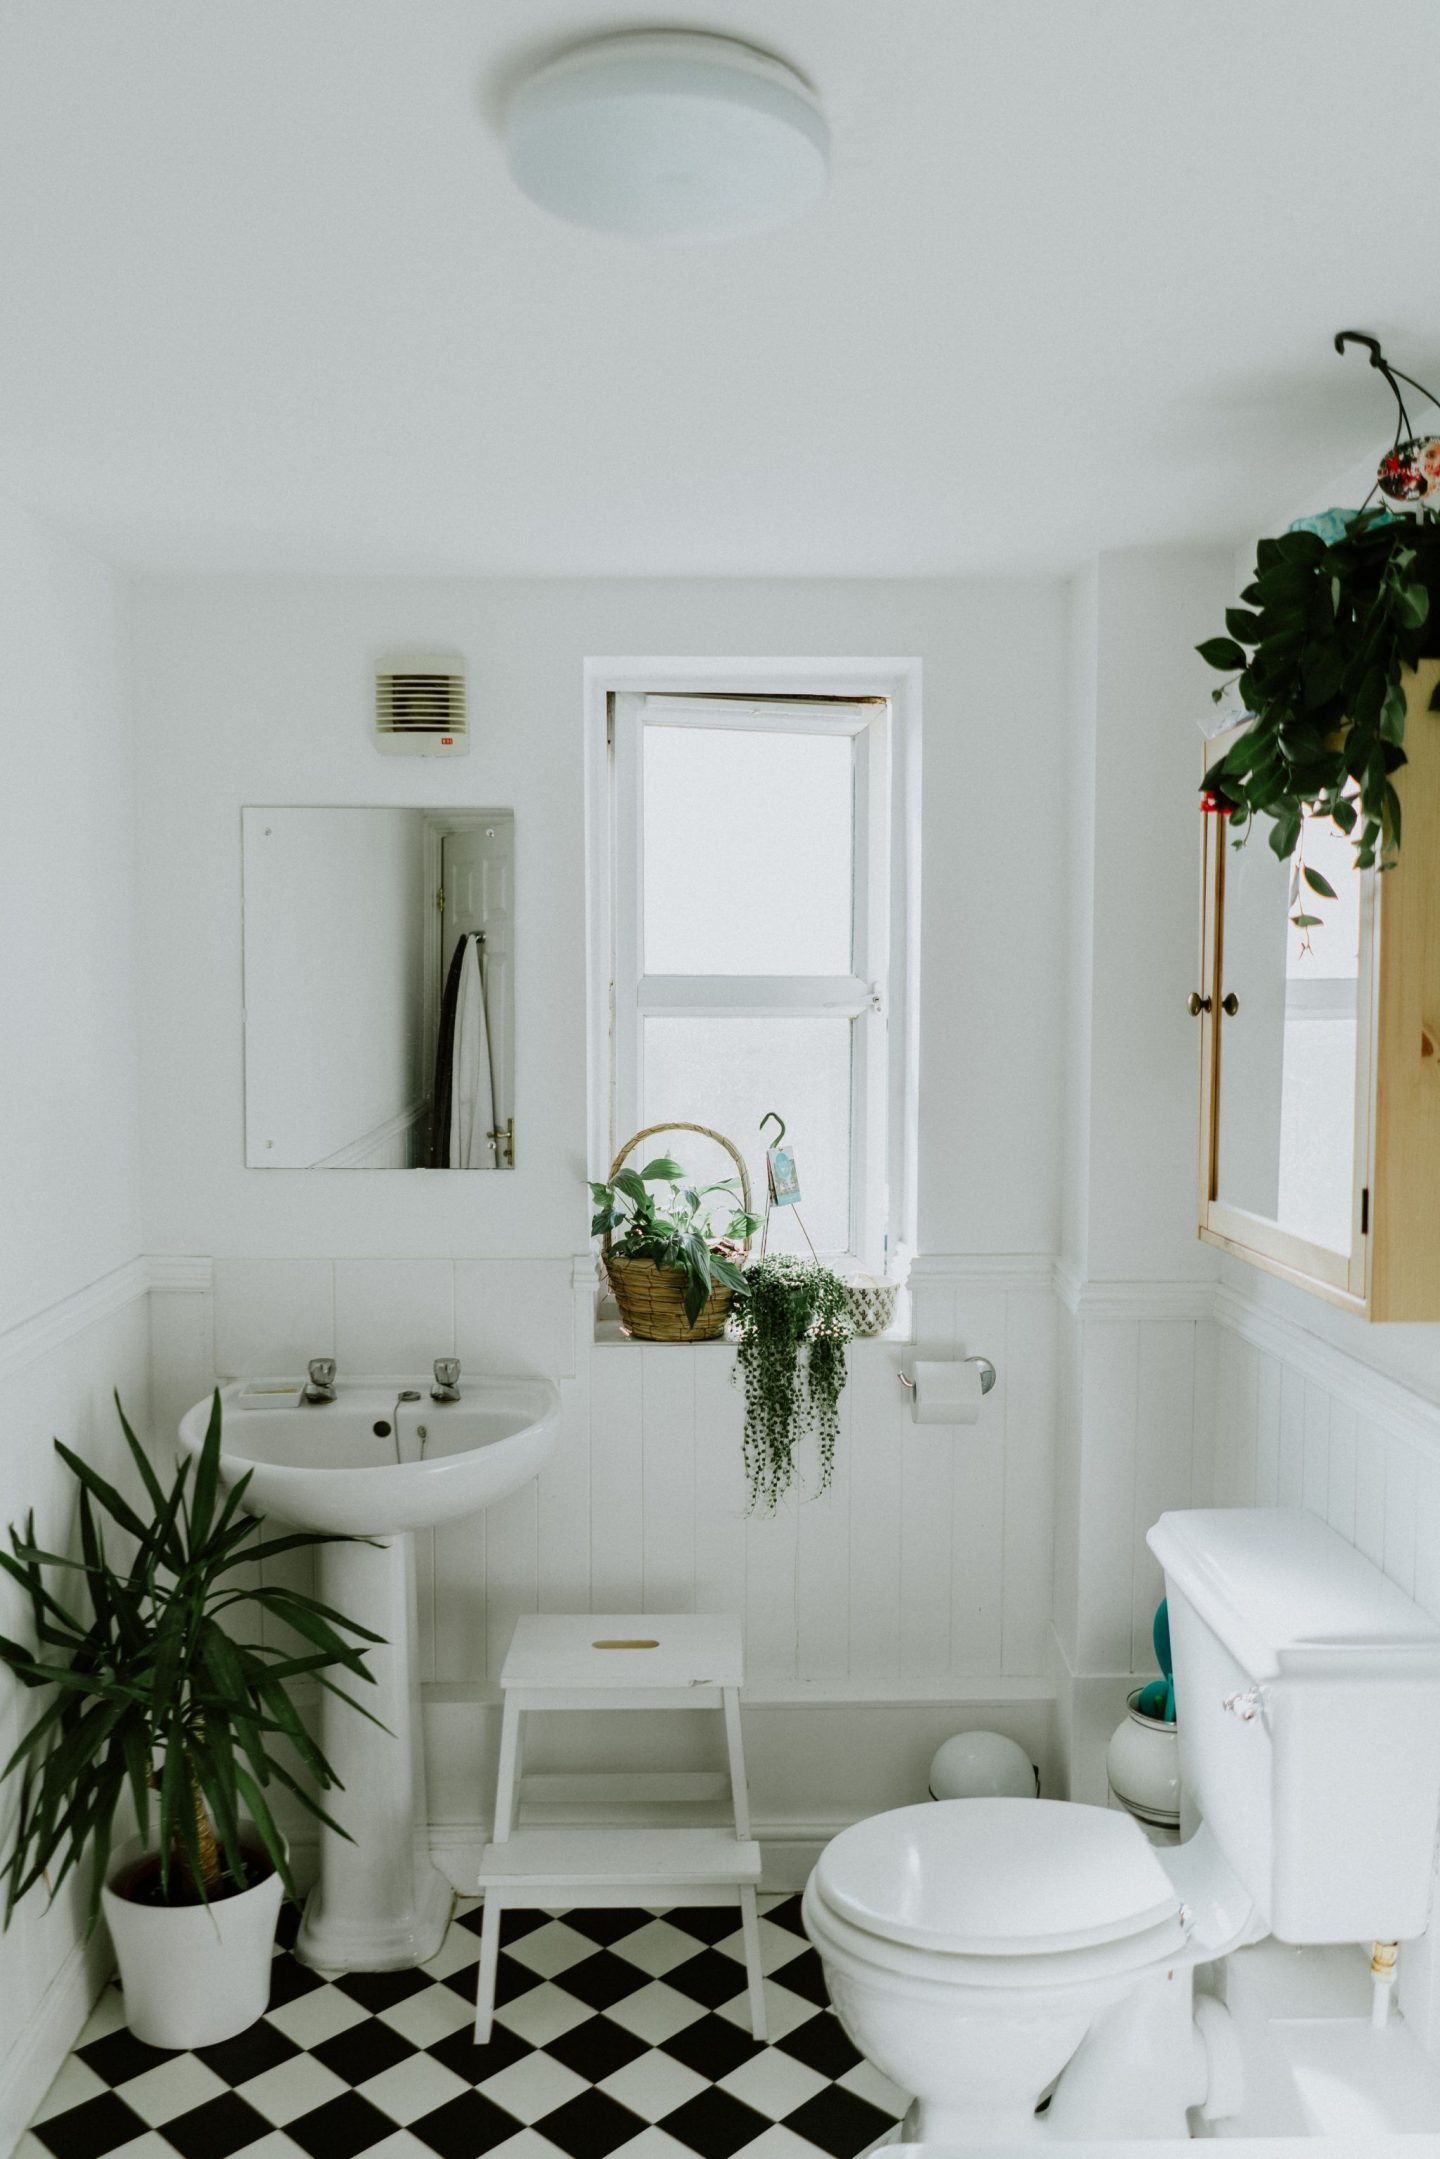 THE PROS AND CONS OF BATHROOM REMODELLING